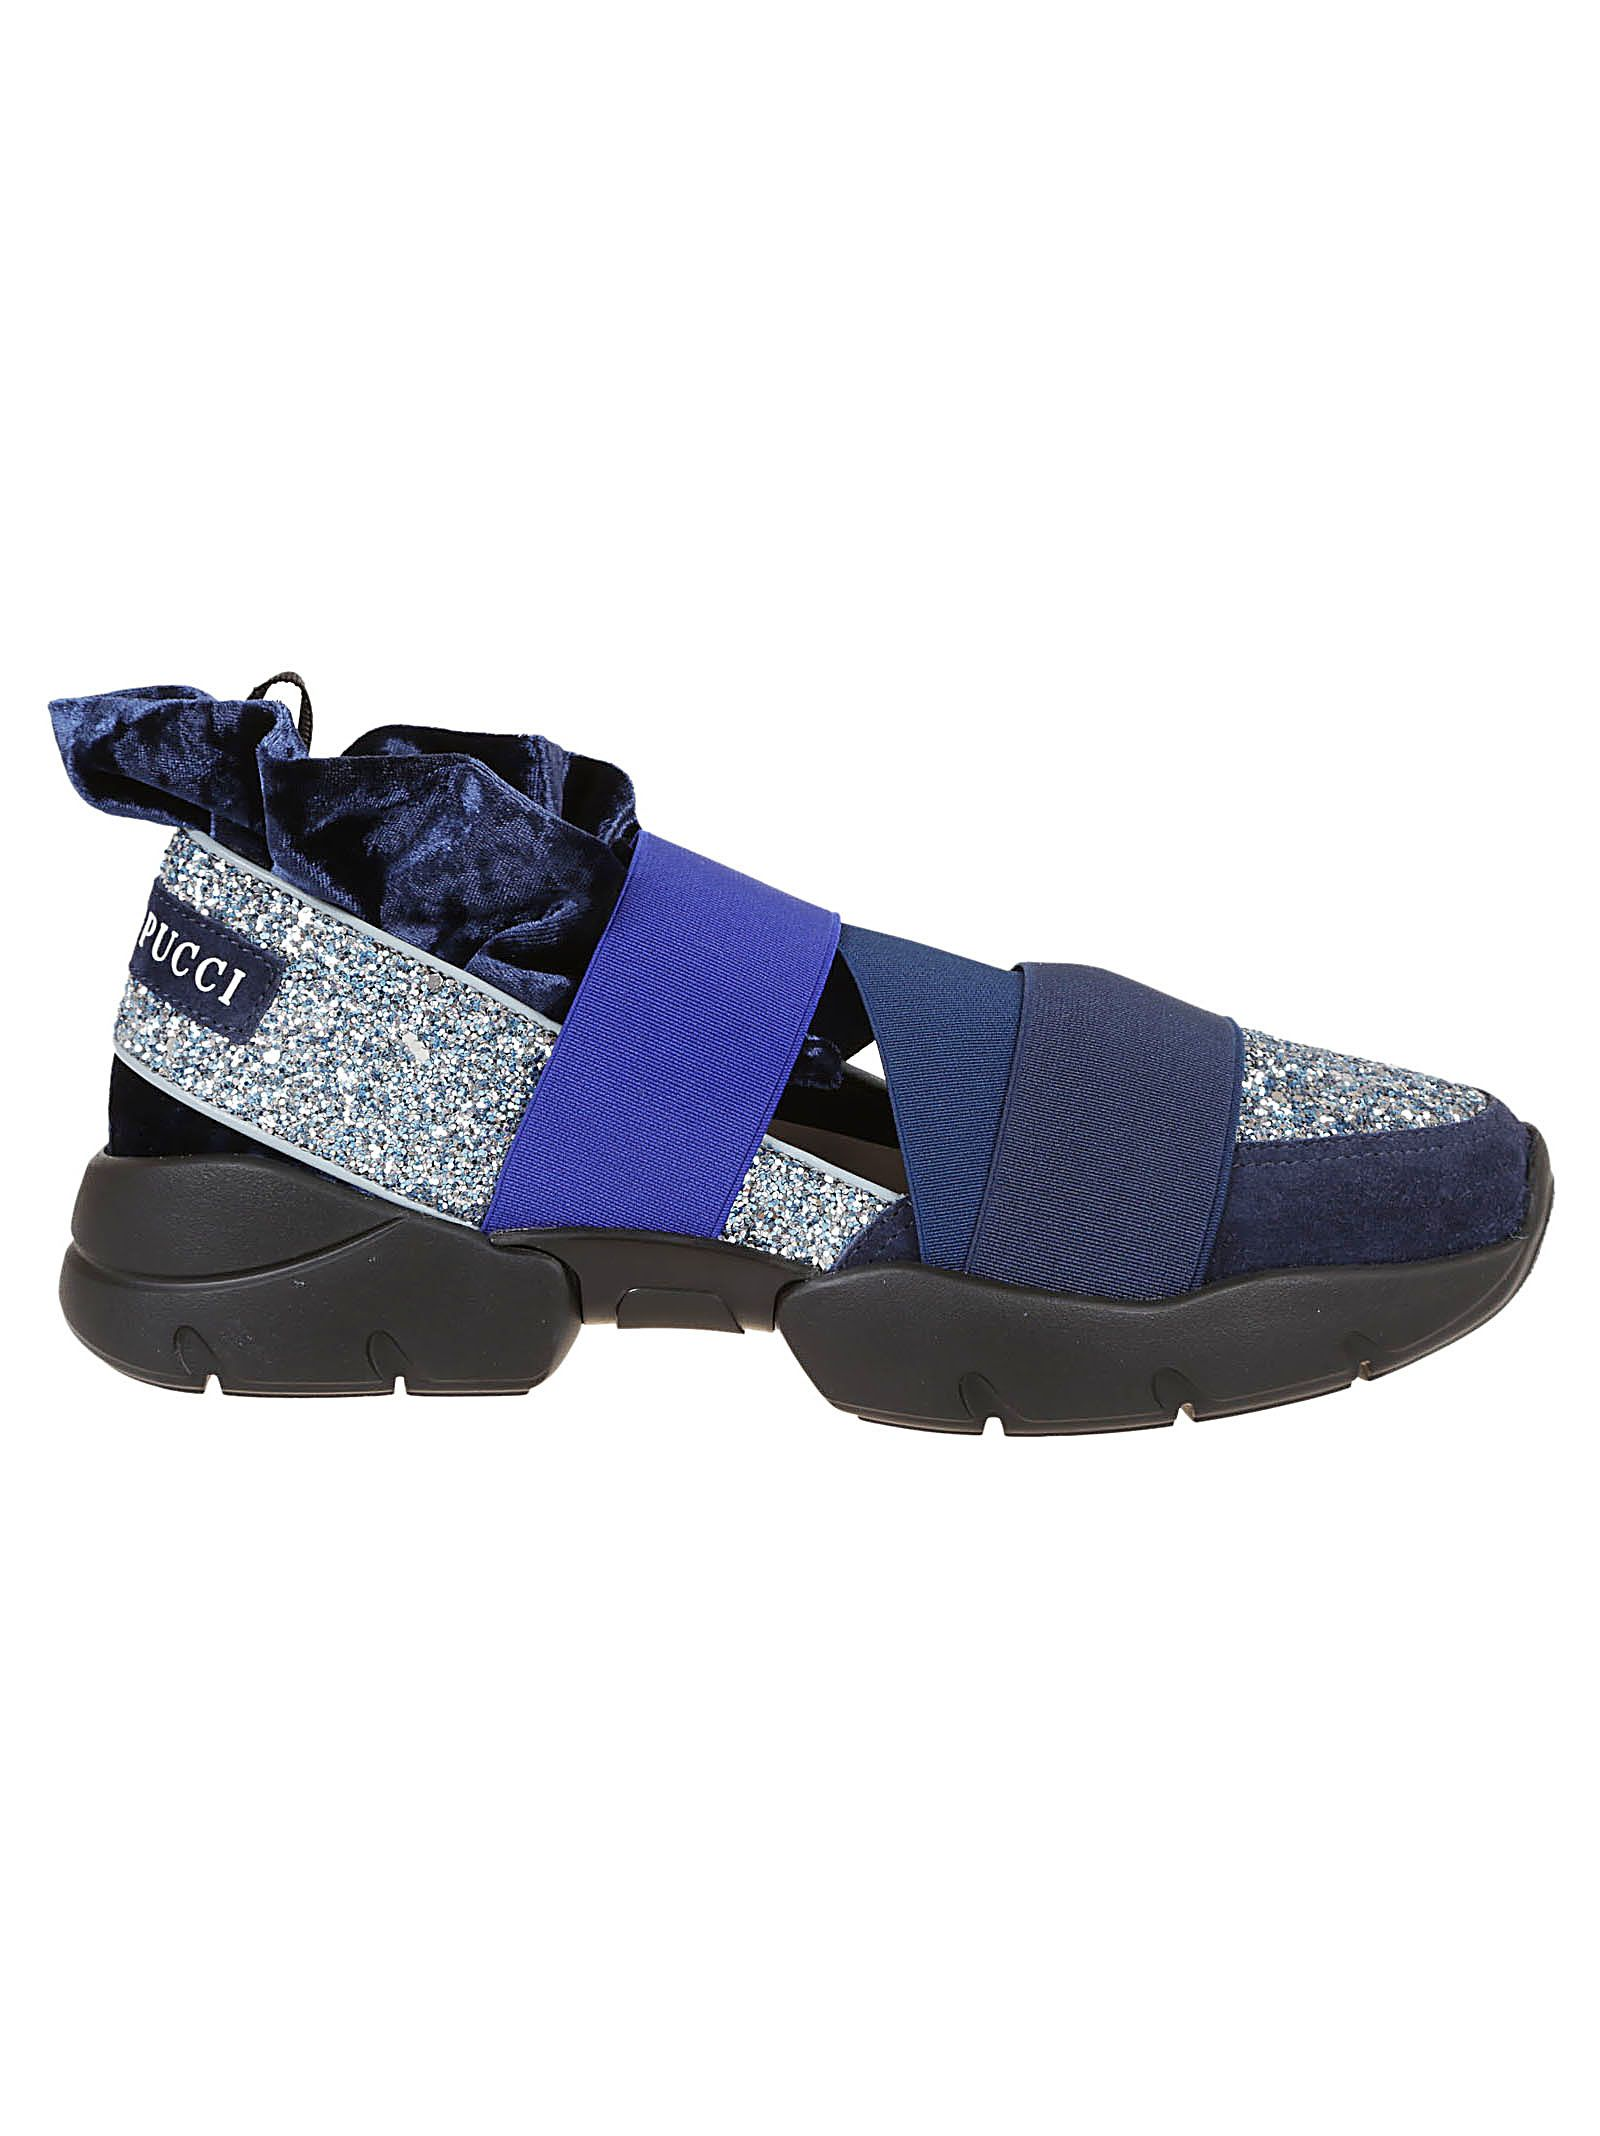 CITY UP SLIP-ON SNEAKERS